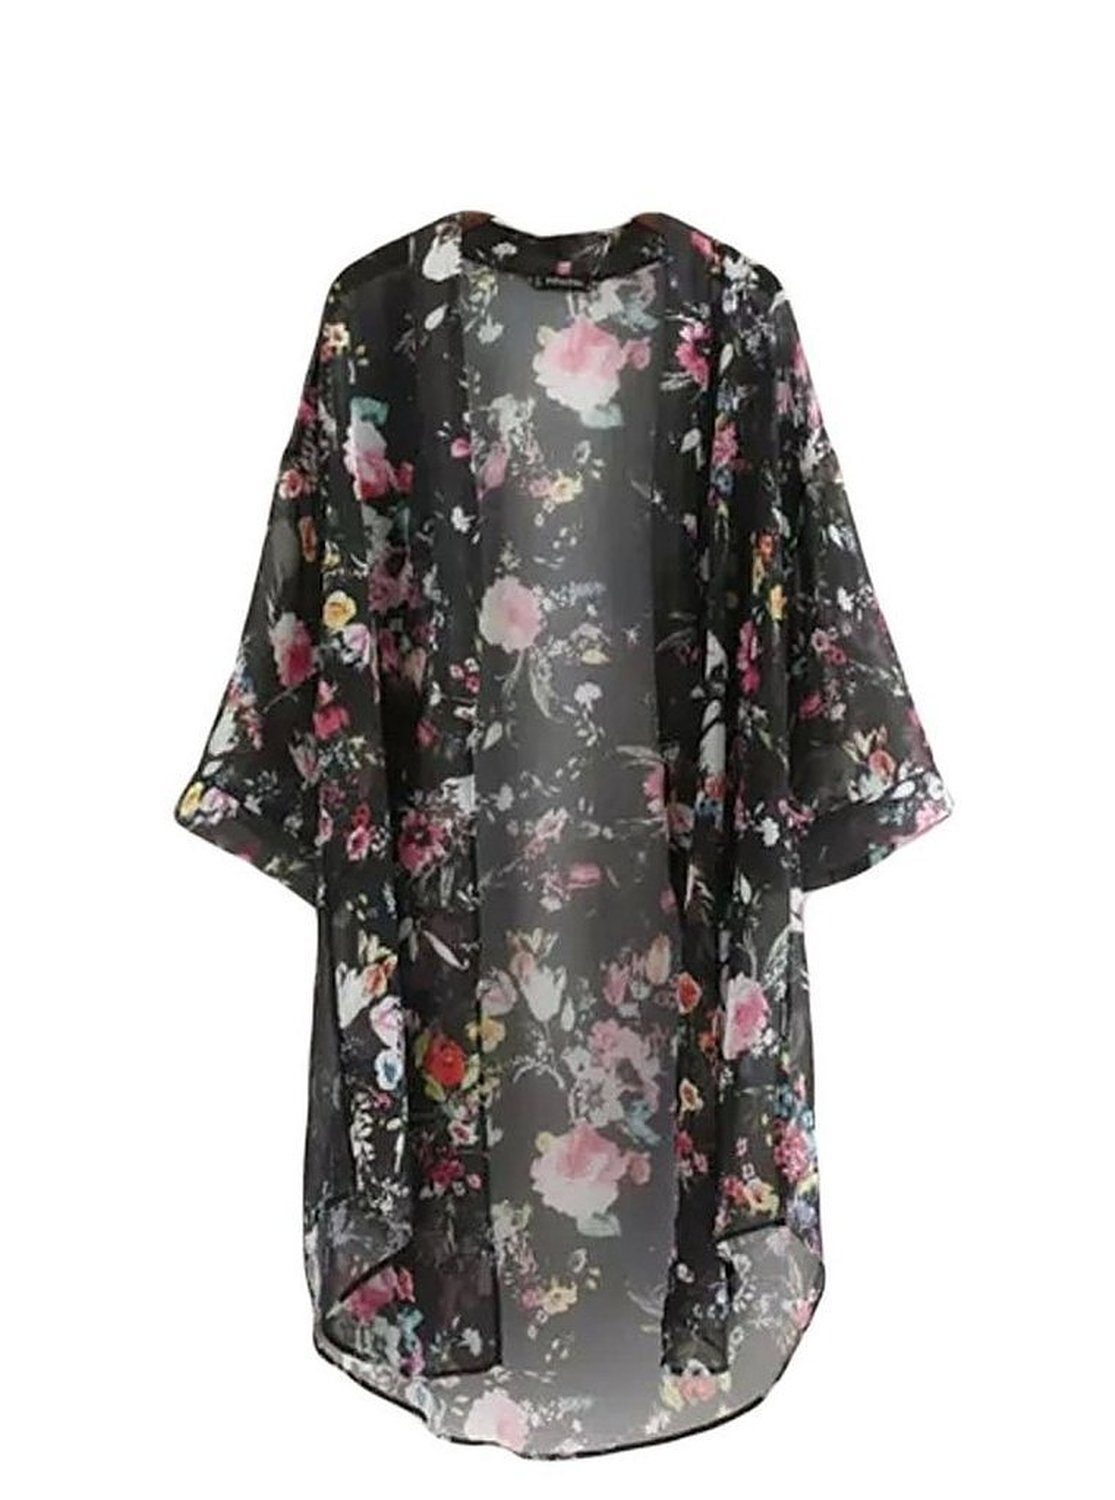 Women's 3/4 Sleeve Floral High Low Chiffon Kimono Cardigan Blouse ...